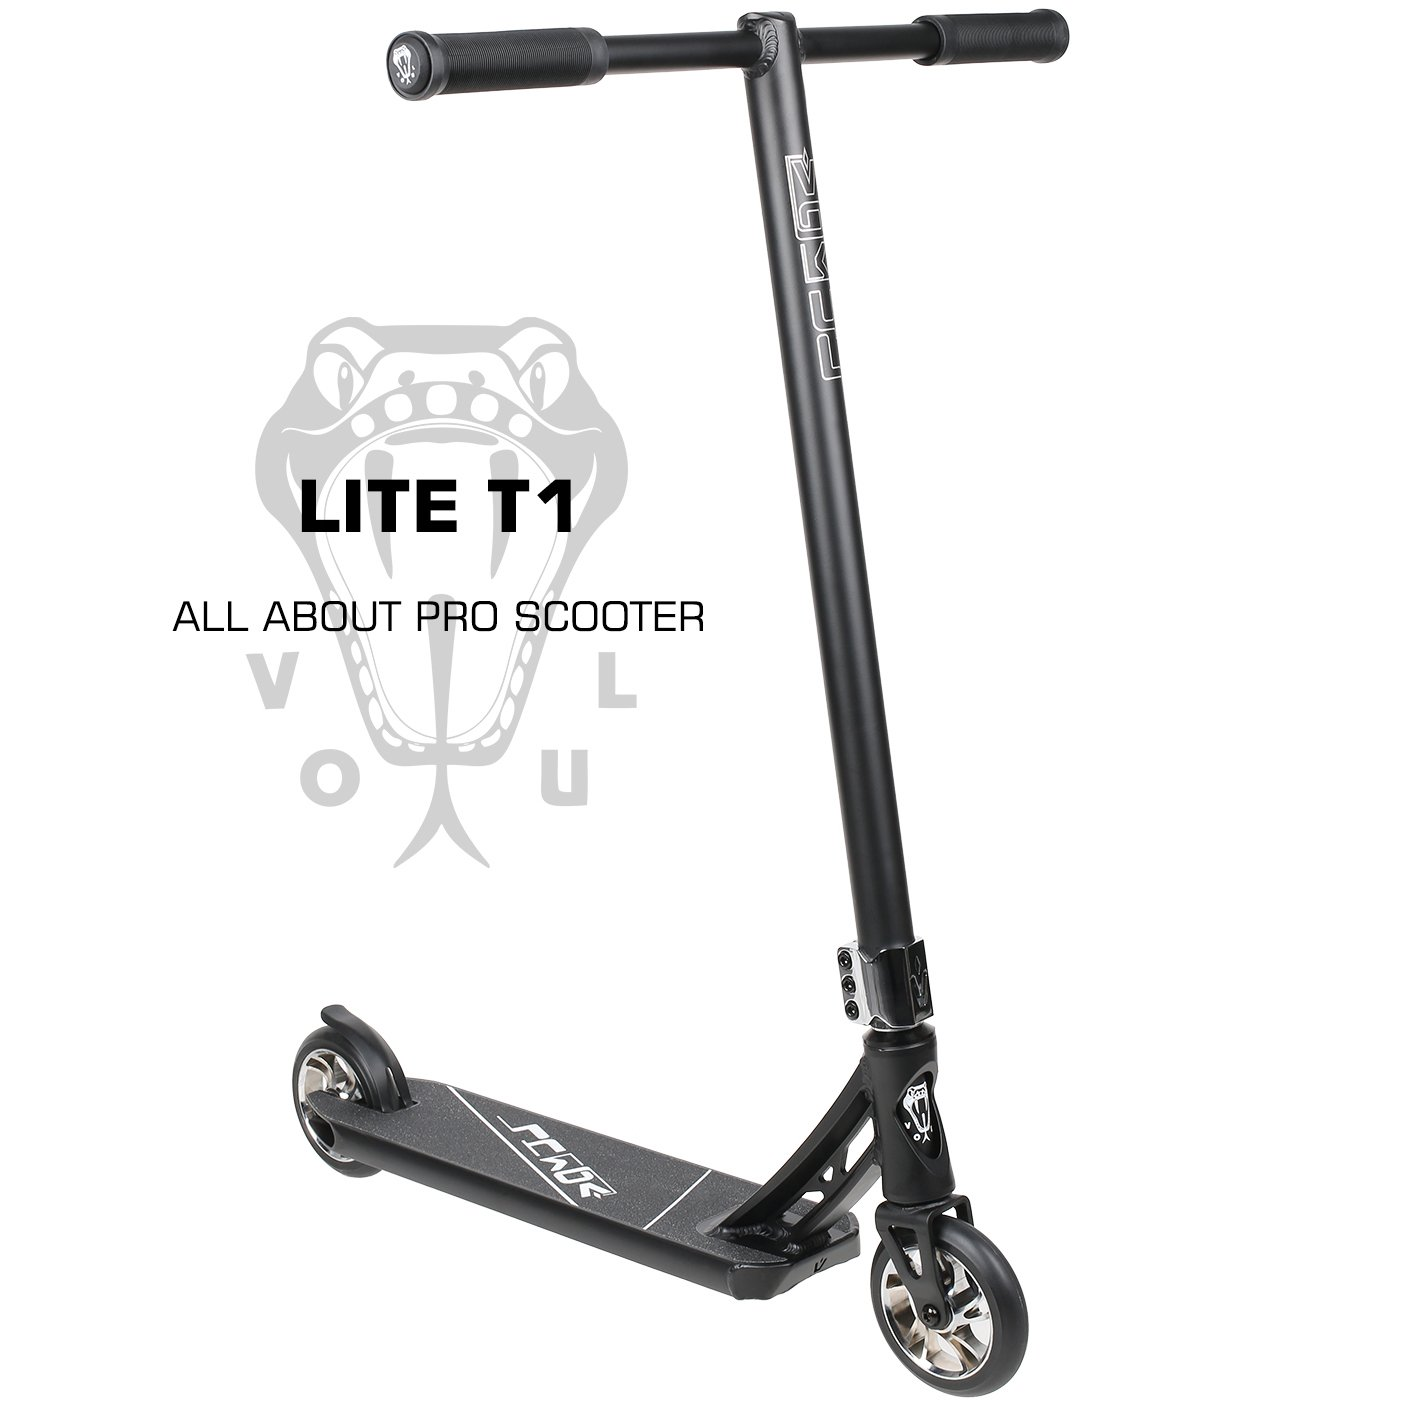 VOKUL LITE Series Complete Pro Stunt Scooter for Kids/Teens, with Reinforced Frame -Lightweight Aluminum Handlebars and 120mm Metal Core Wheels (Black)